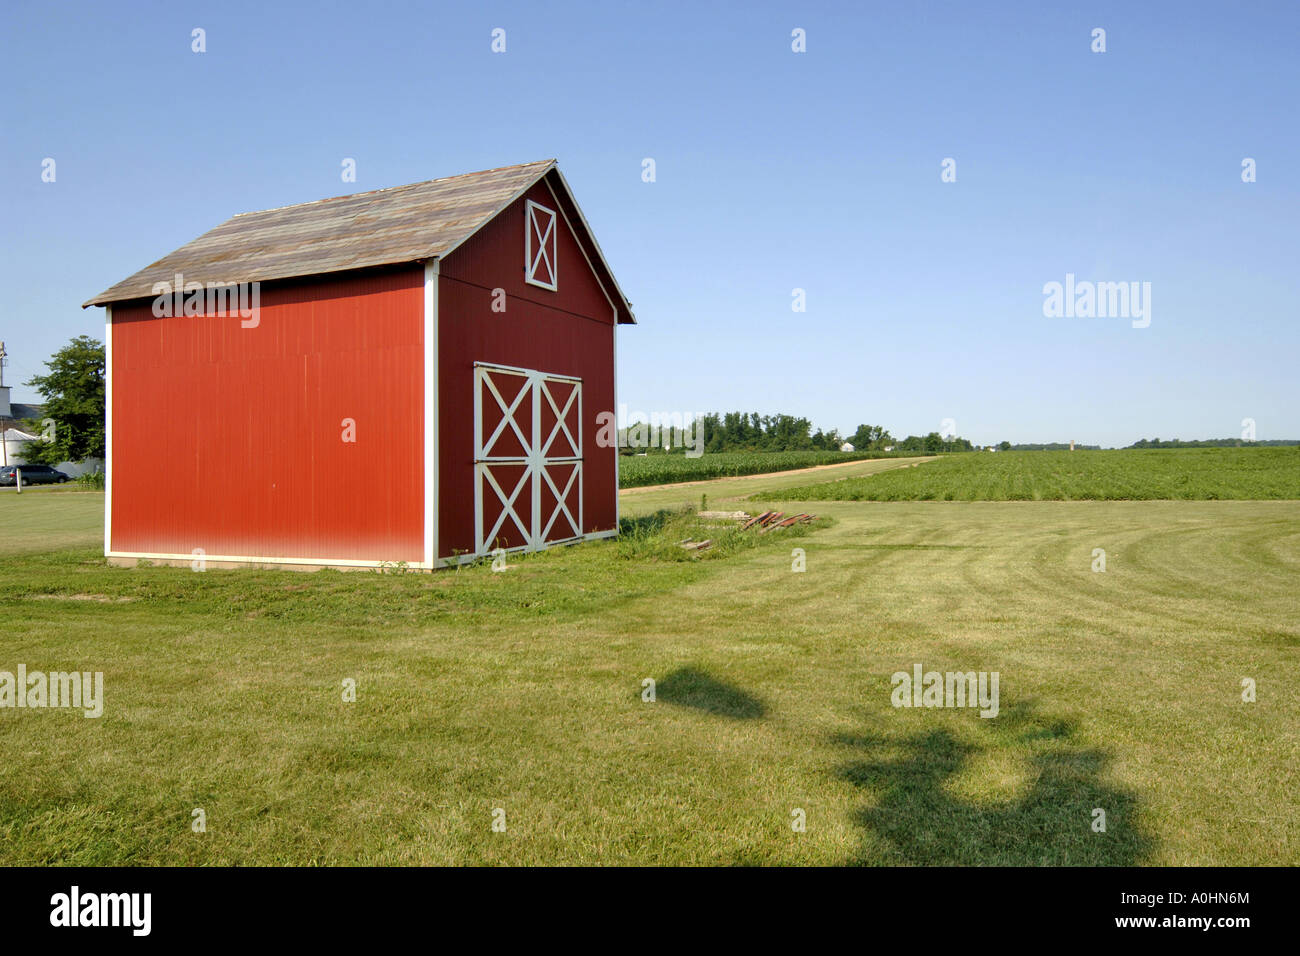 Traditional Mid West American Farm Building In Rural